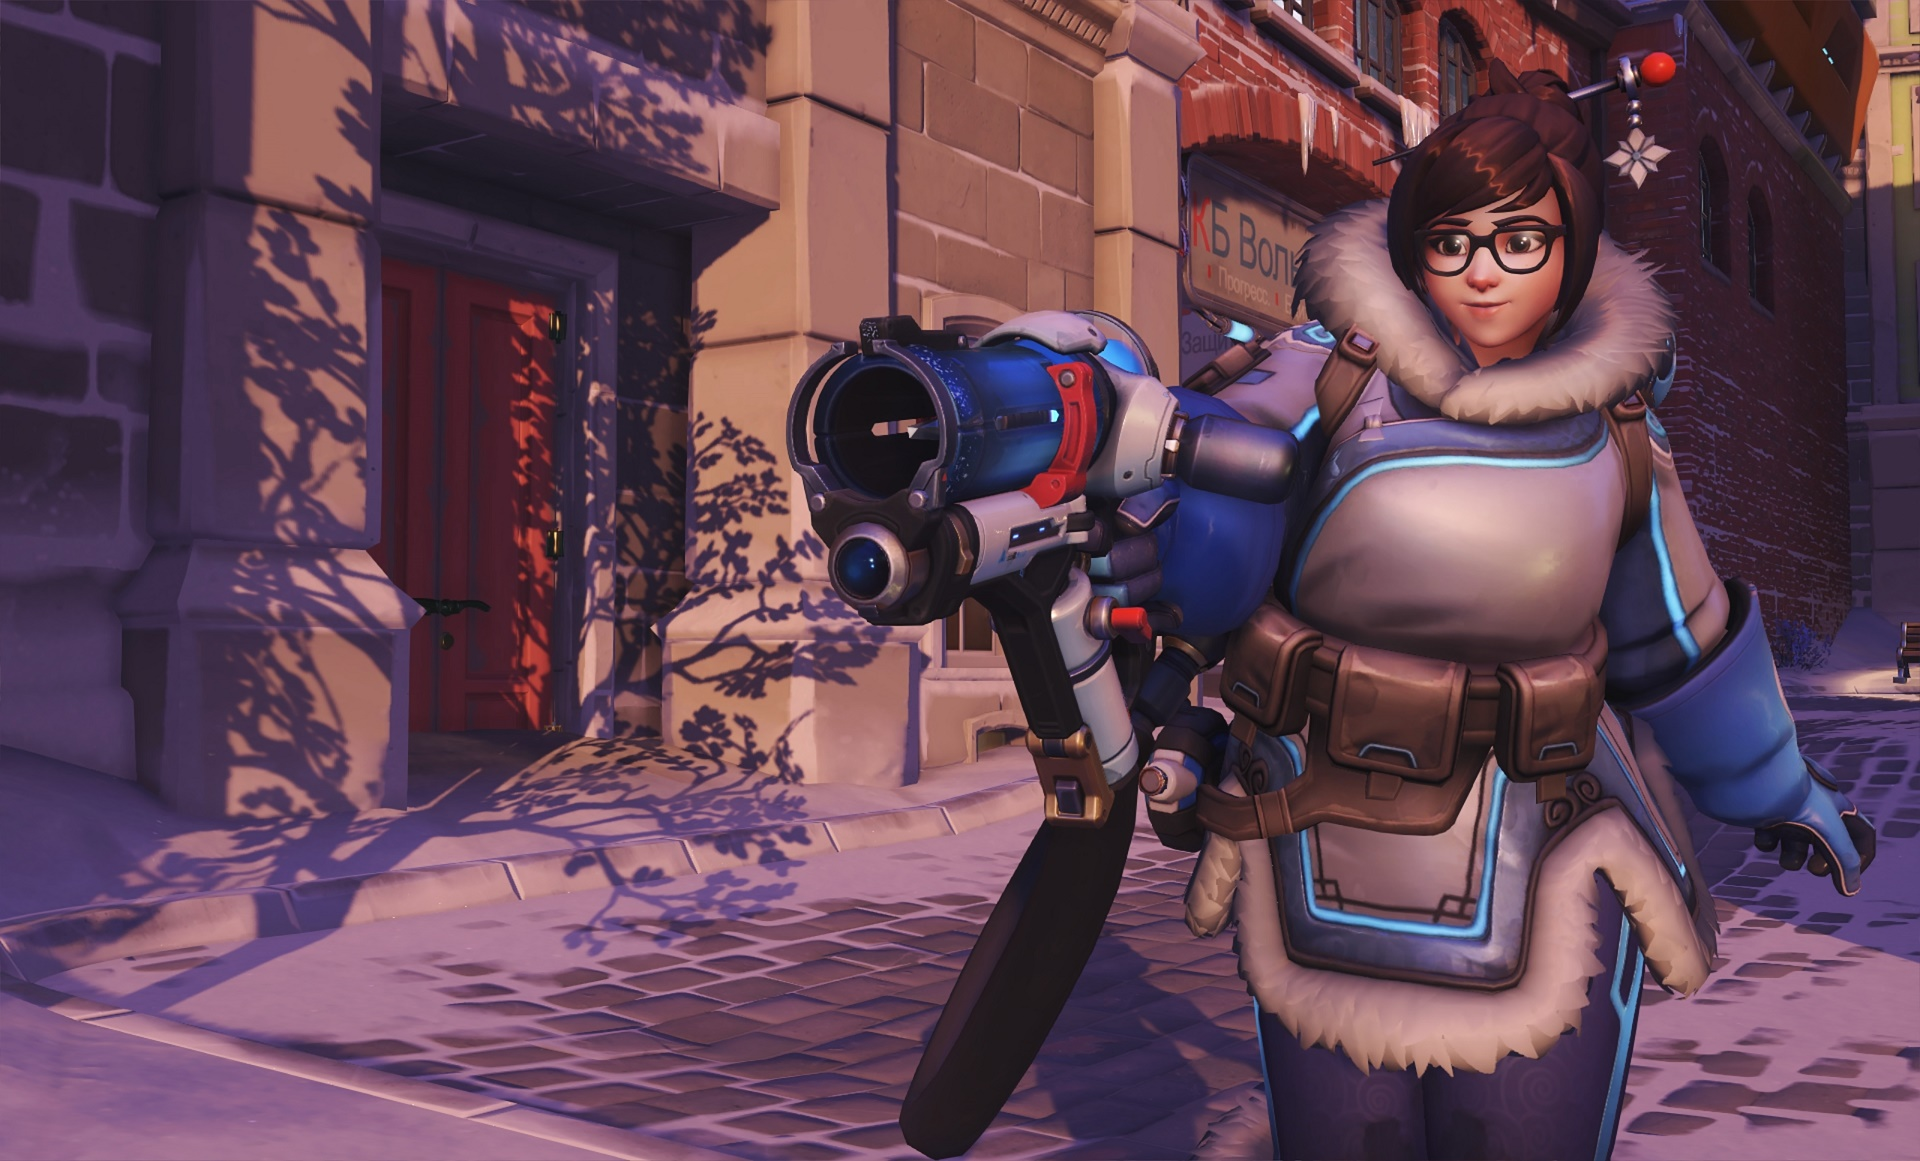 Mei_003 5 of the Most Interesting Characters to Play in Overwatch